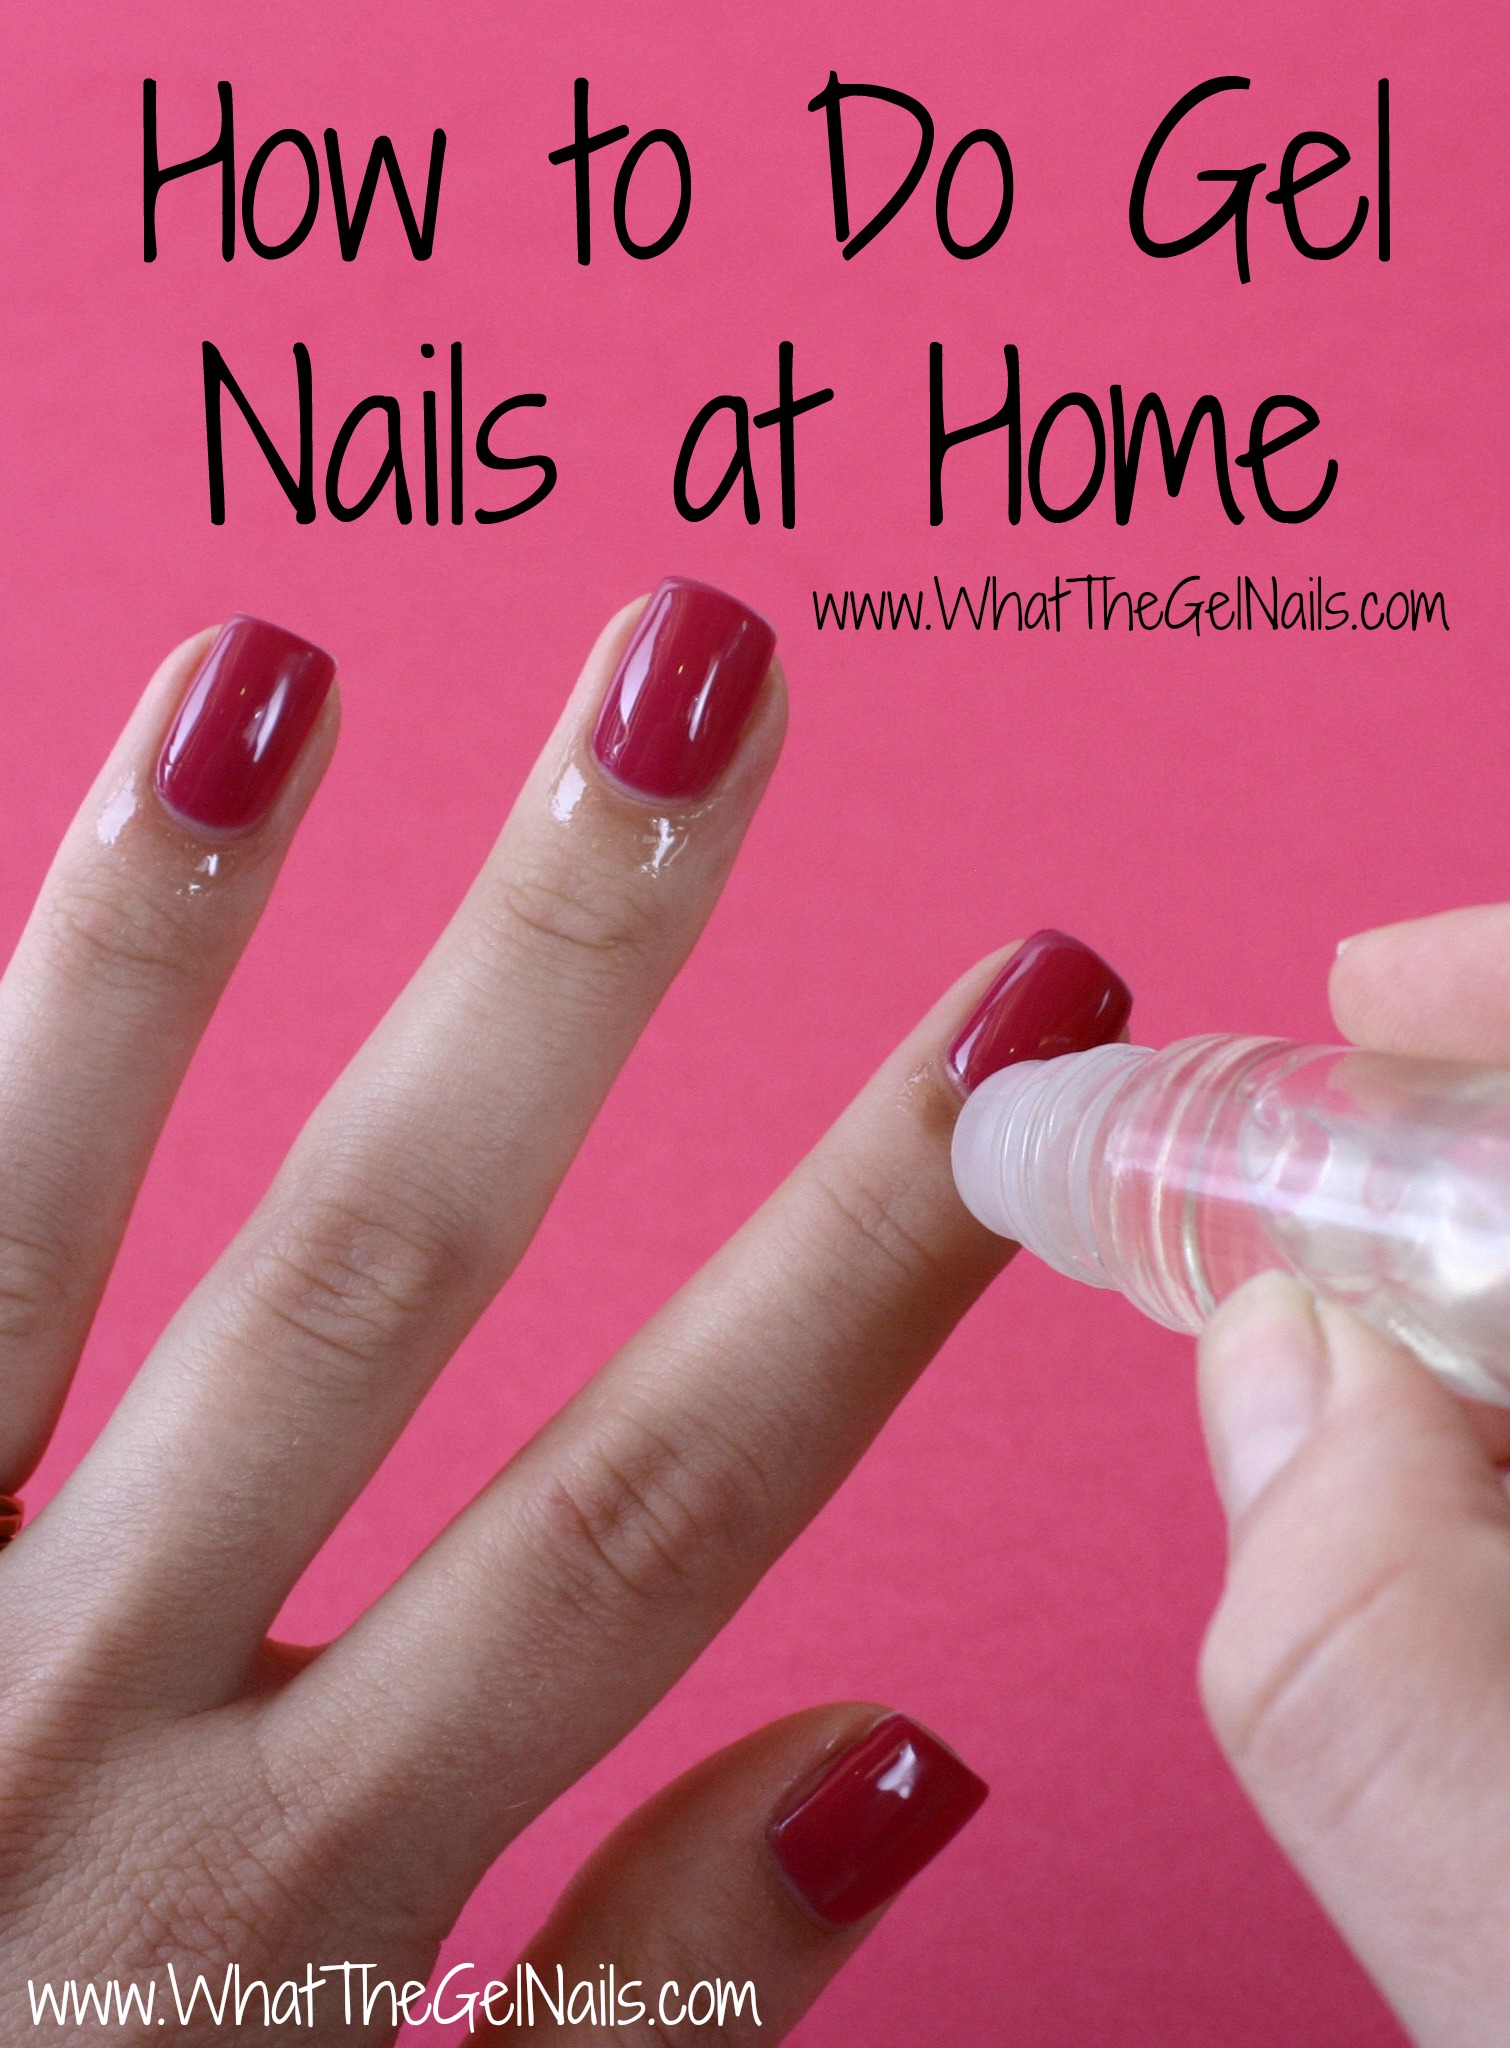 to Do Gel Nails at Home